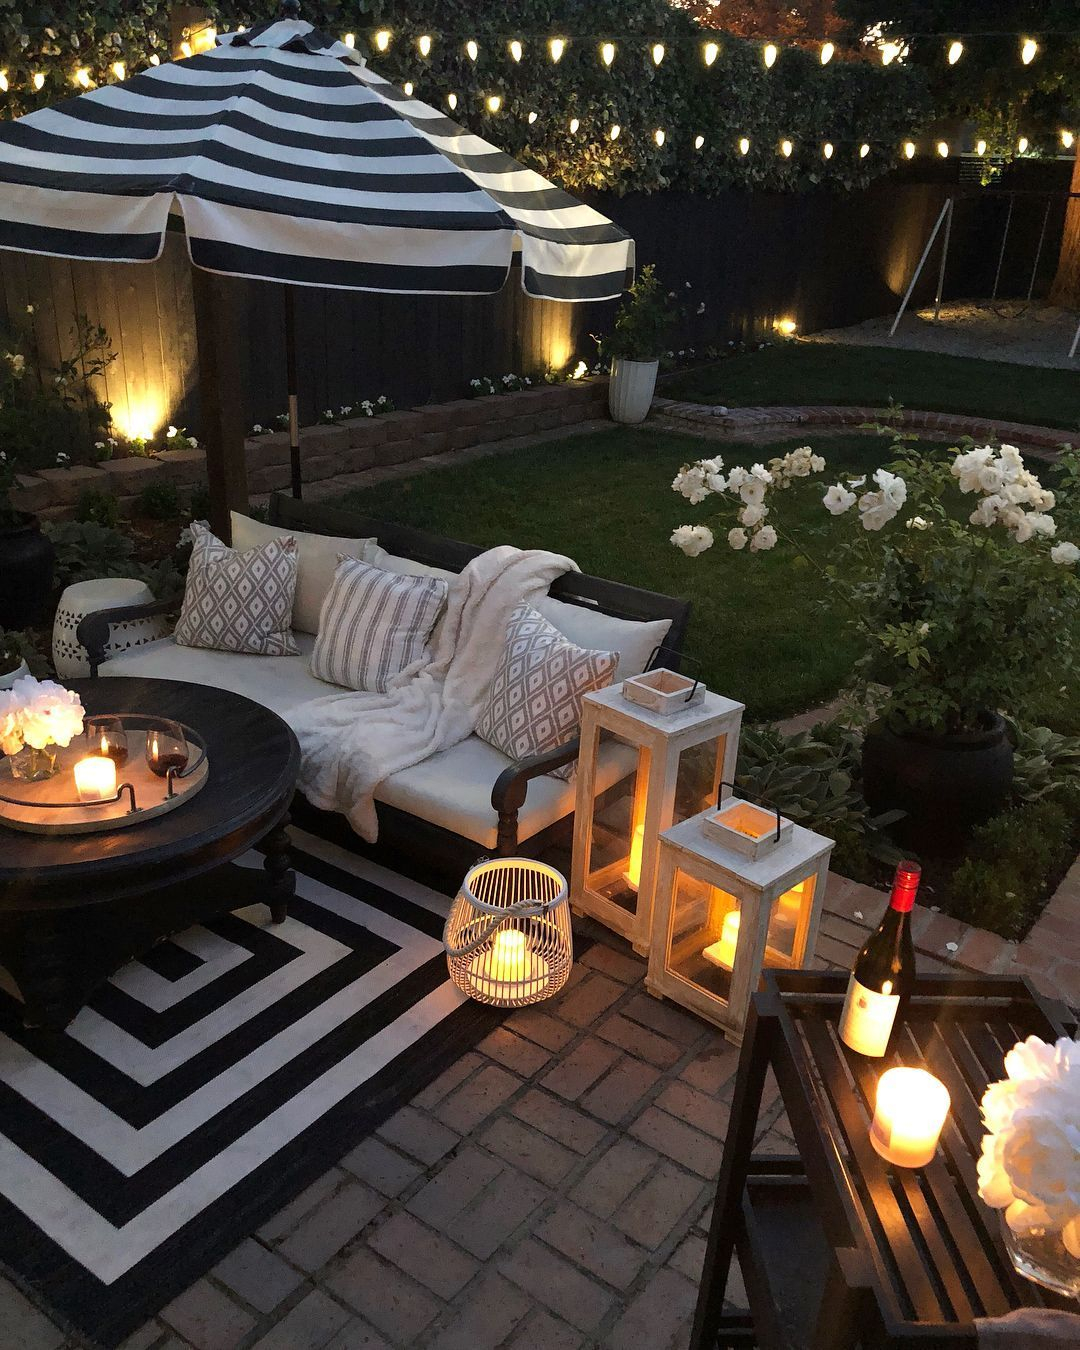 45 Backyard Patio Ideas That Will Amaze Inspire You Pictures Of within Patio Ideas For Backyard